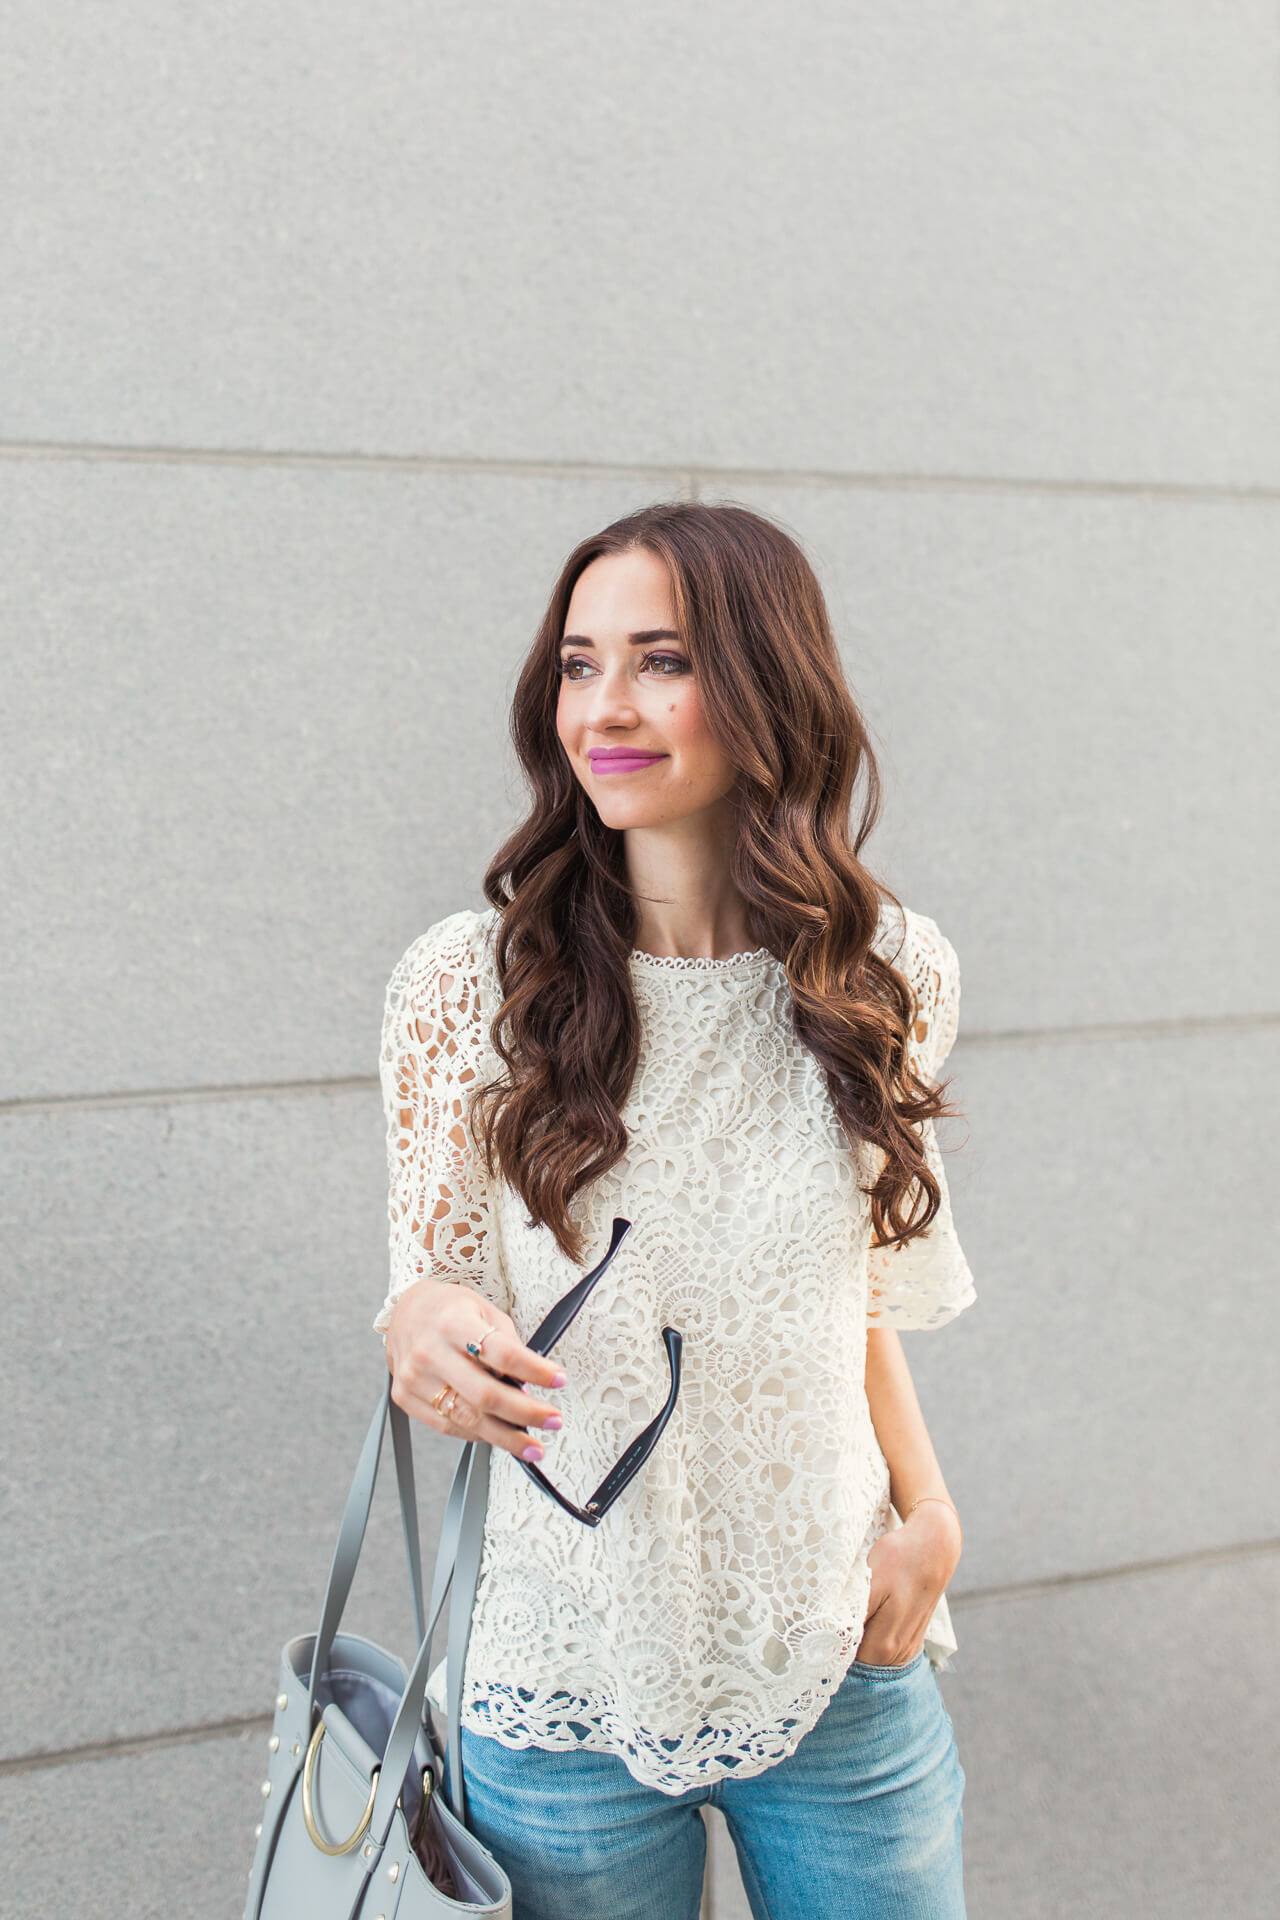 a gorgeous lace top to wear under coats now and on its own for spring - M Loves M @marmar